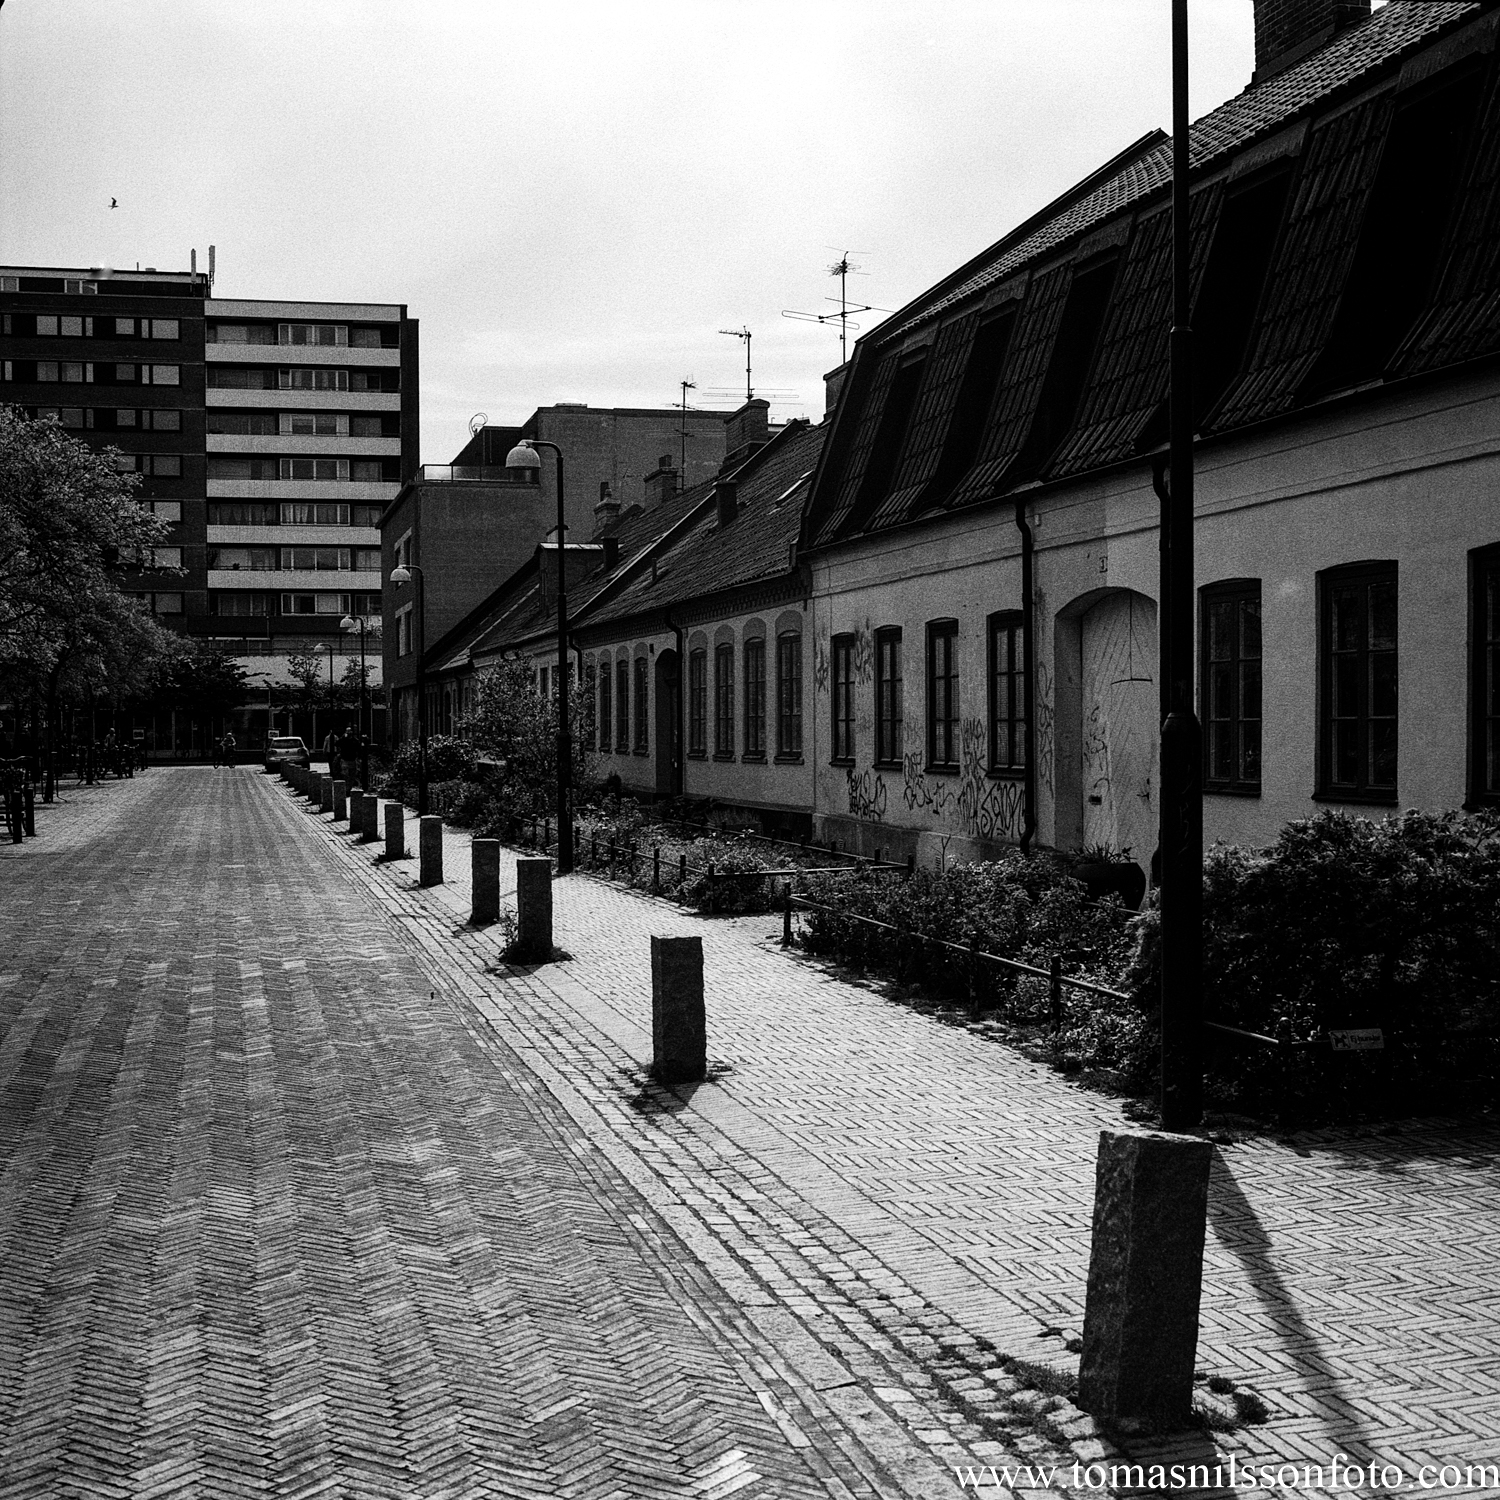 Day 138 - May 138: Remnants of old Malmö